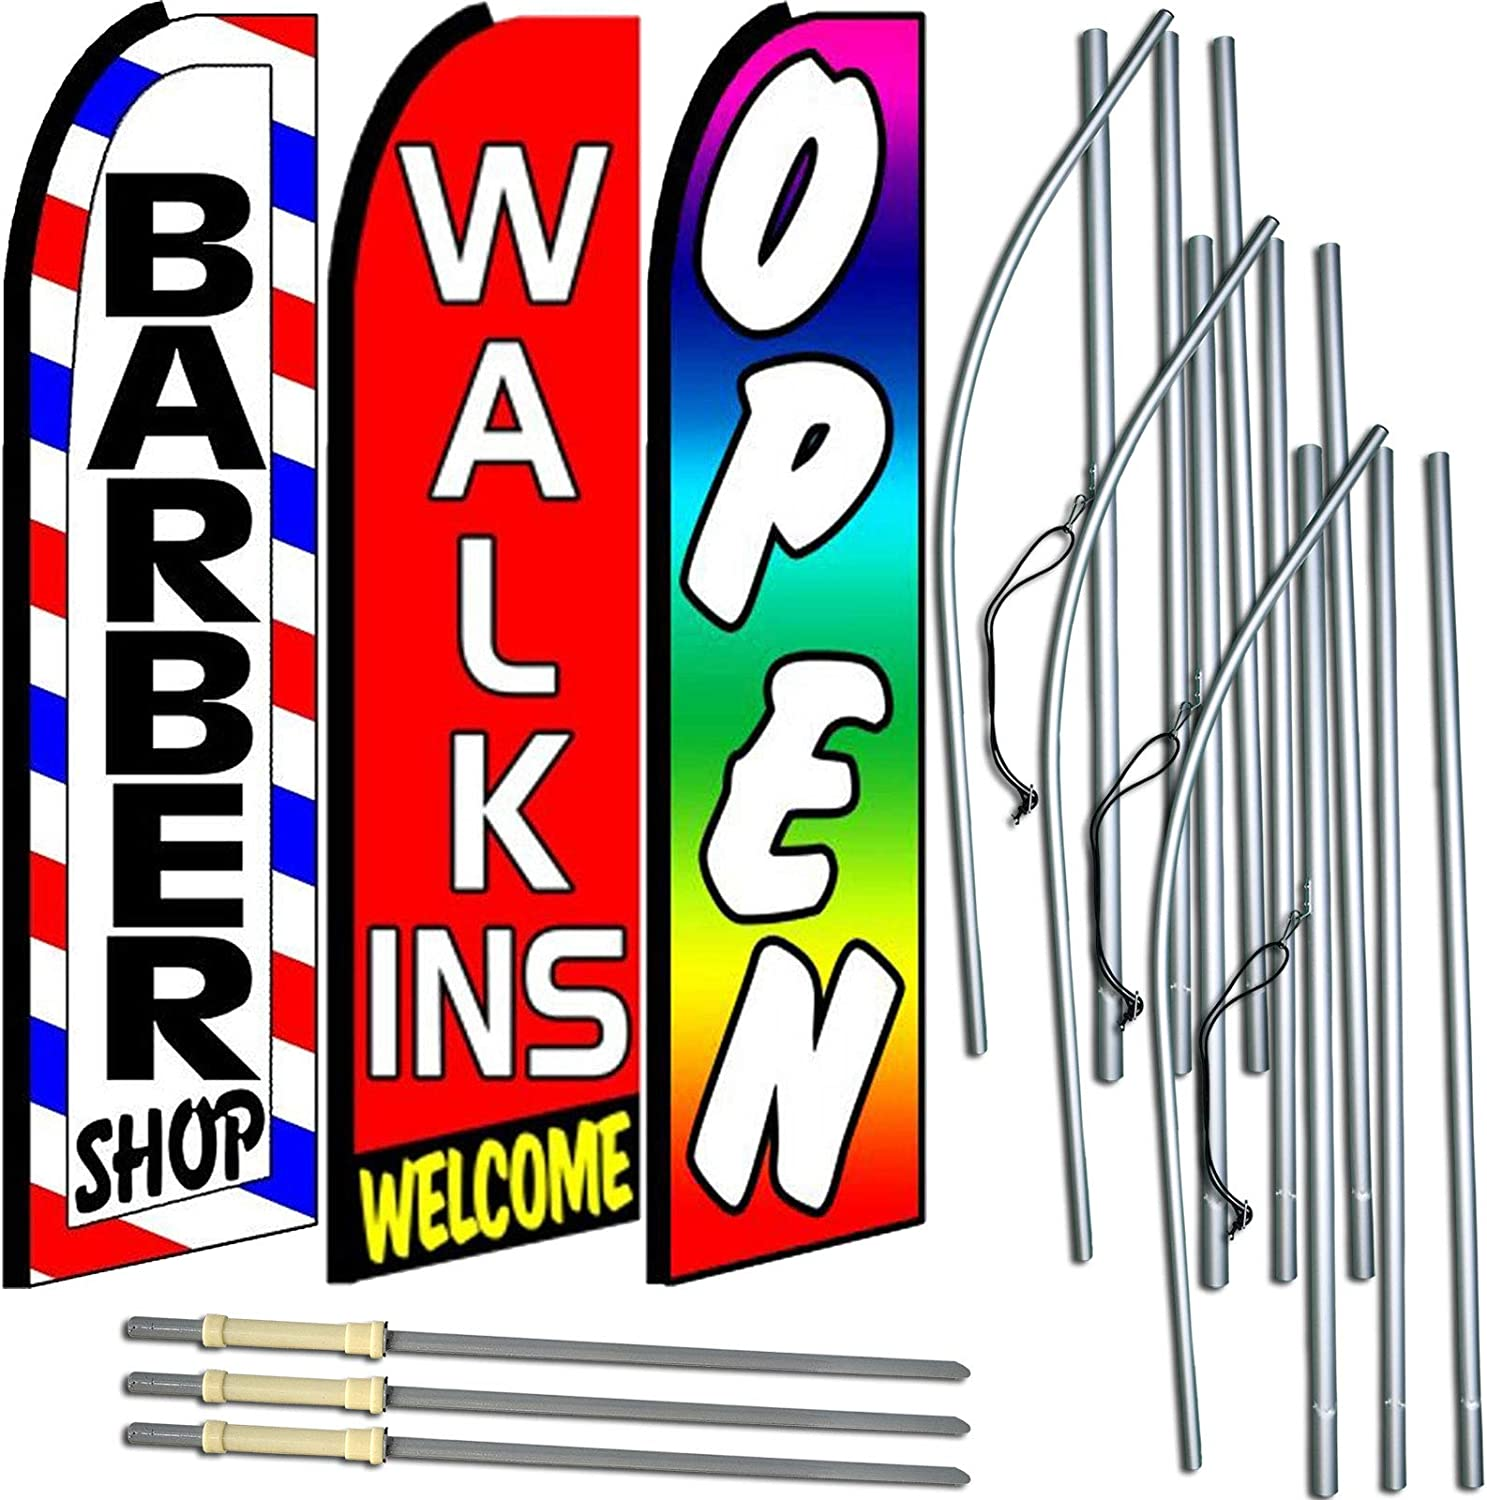 Pack of 3 Now Open Now Open King Swooper Feather Flag Sign Kit with Pole and Ground Spike Barber Shop